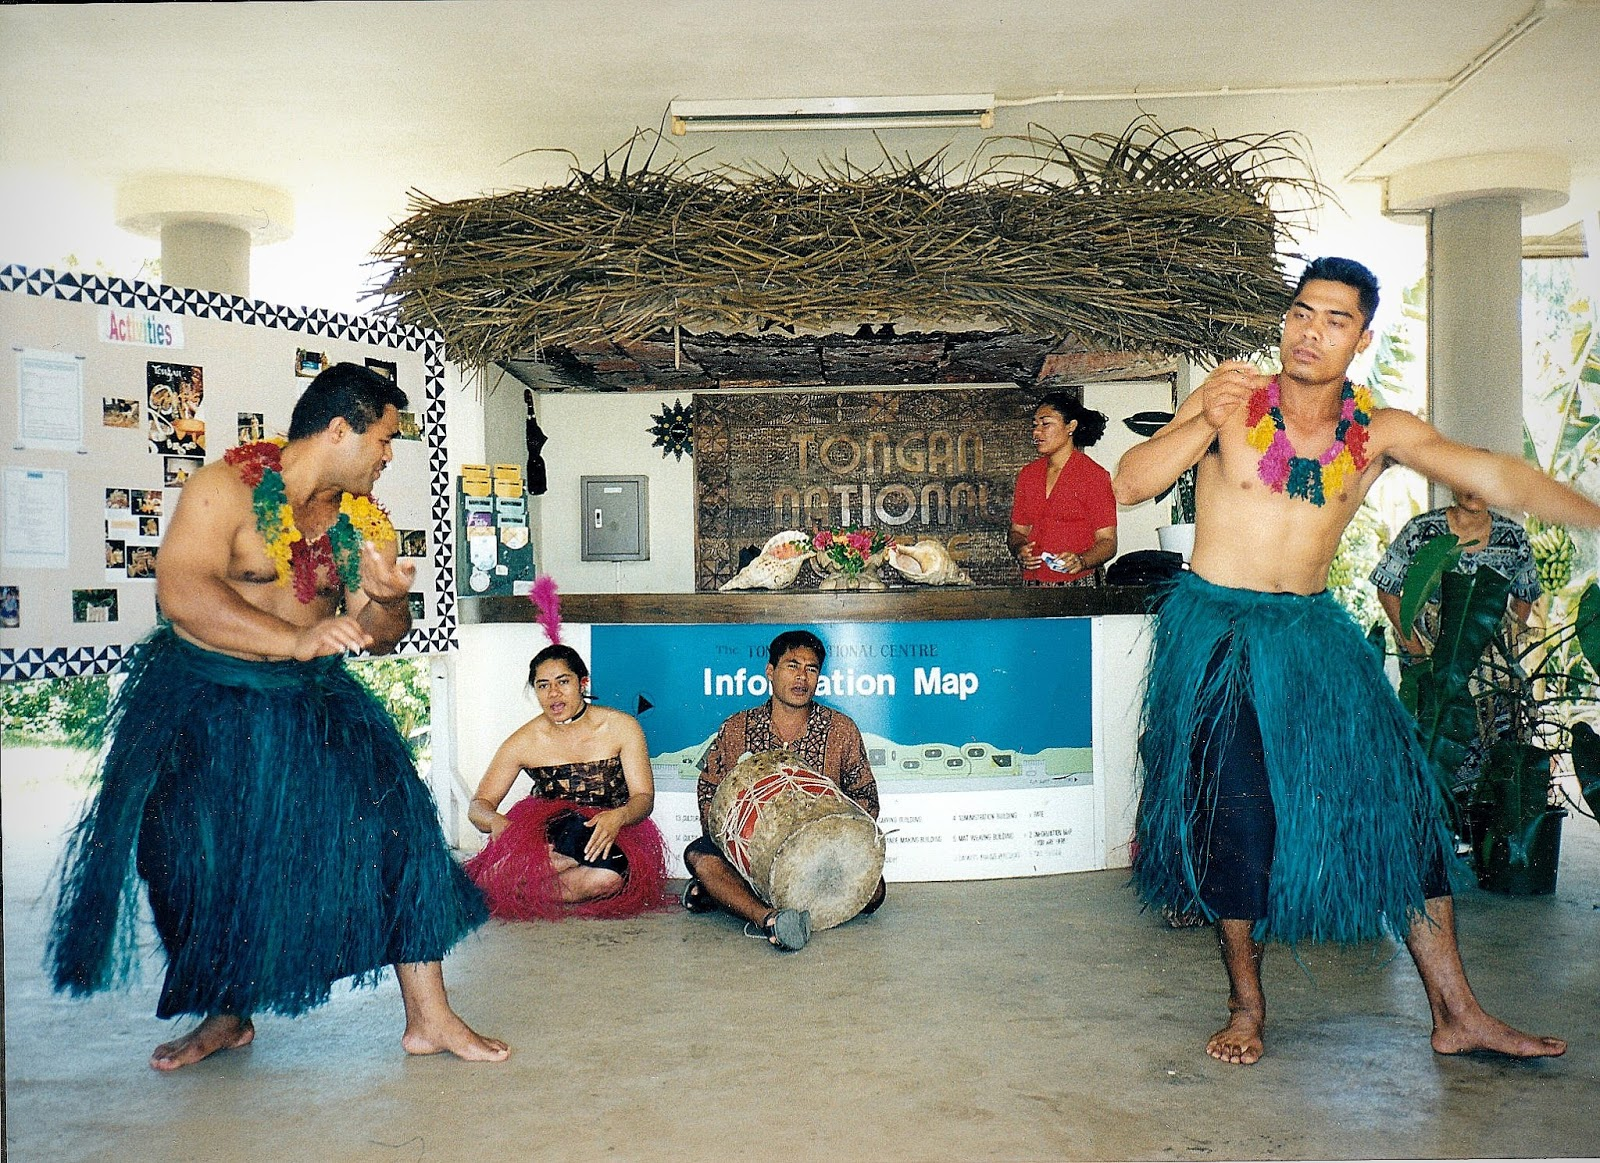 At this Tongan feast, there was also some dancing